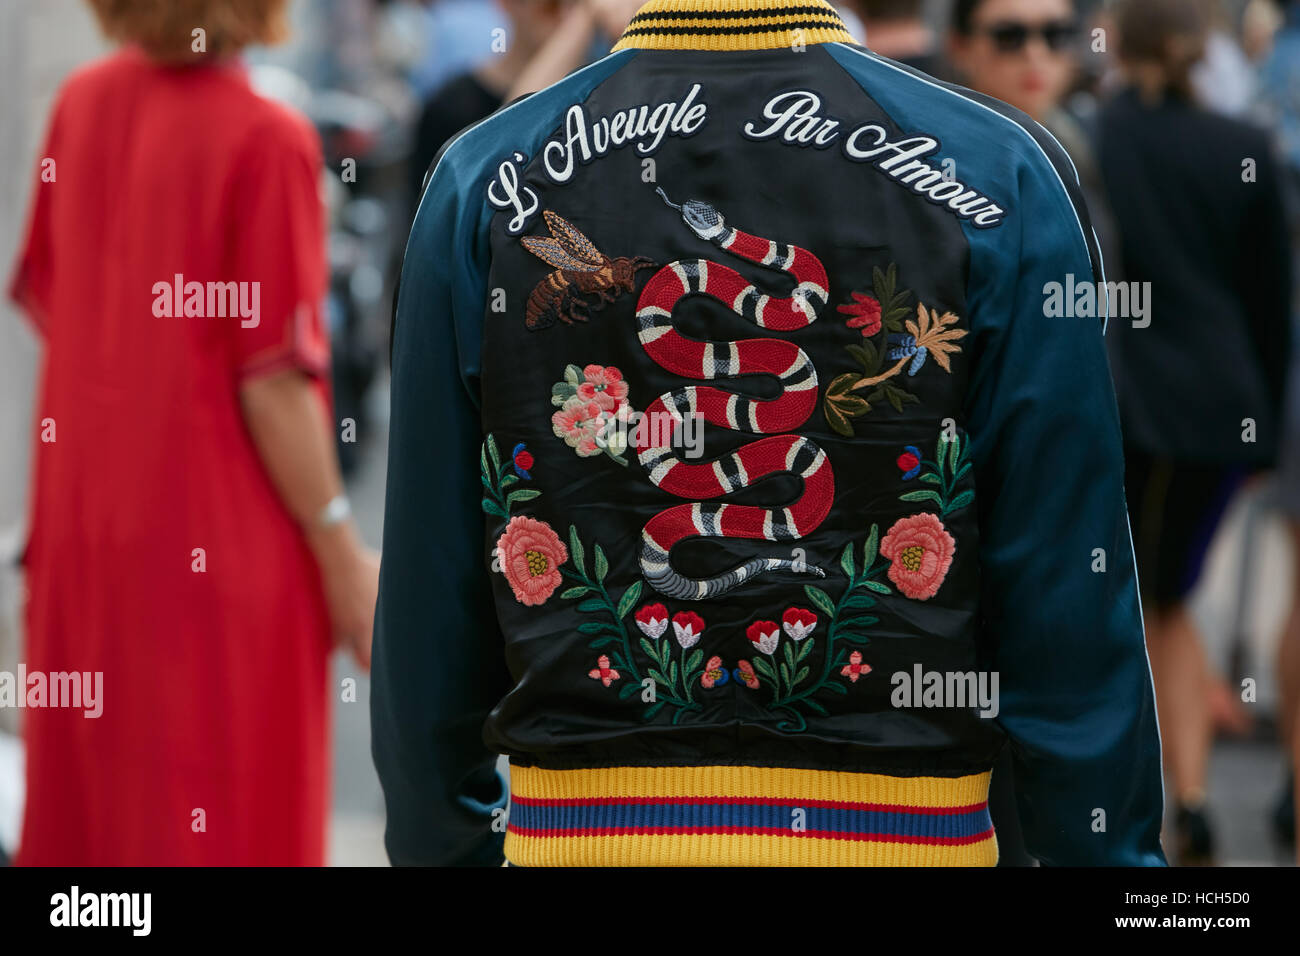 197b10786bbc Man with Gucci bomber jacket 'Blind by love' with snake and floral  decoration before